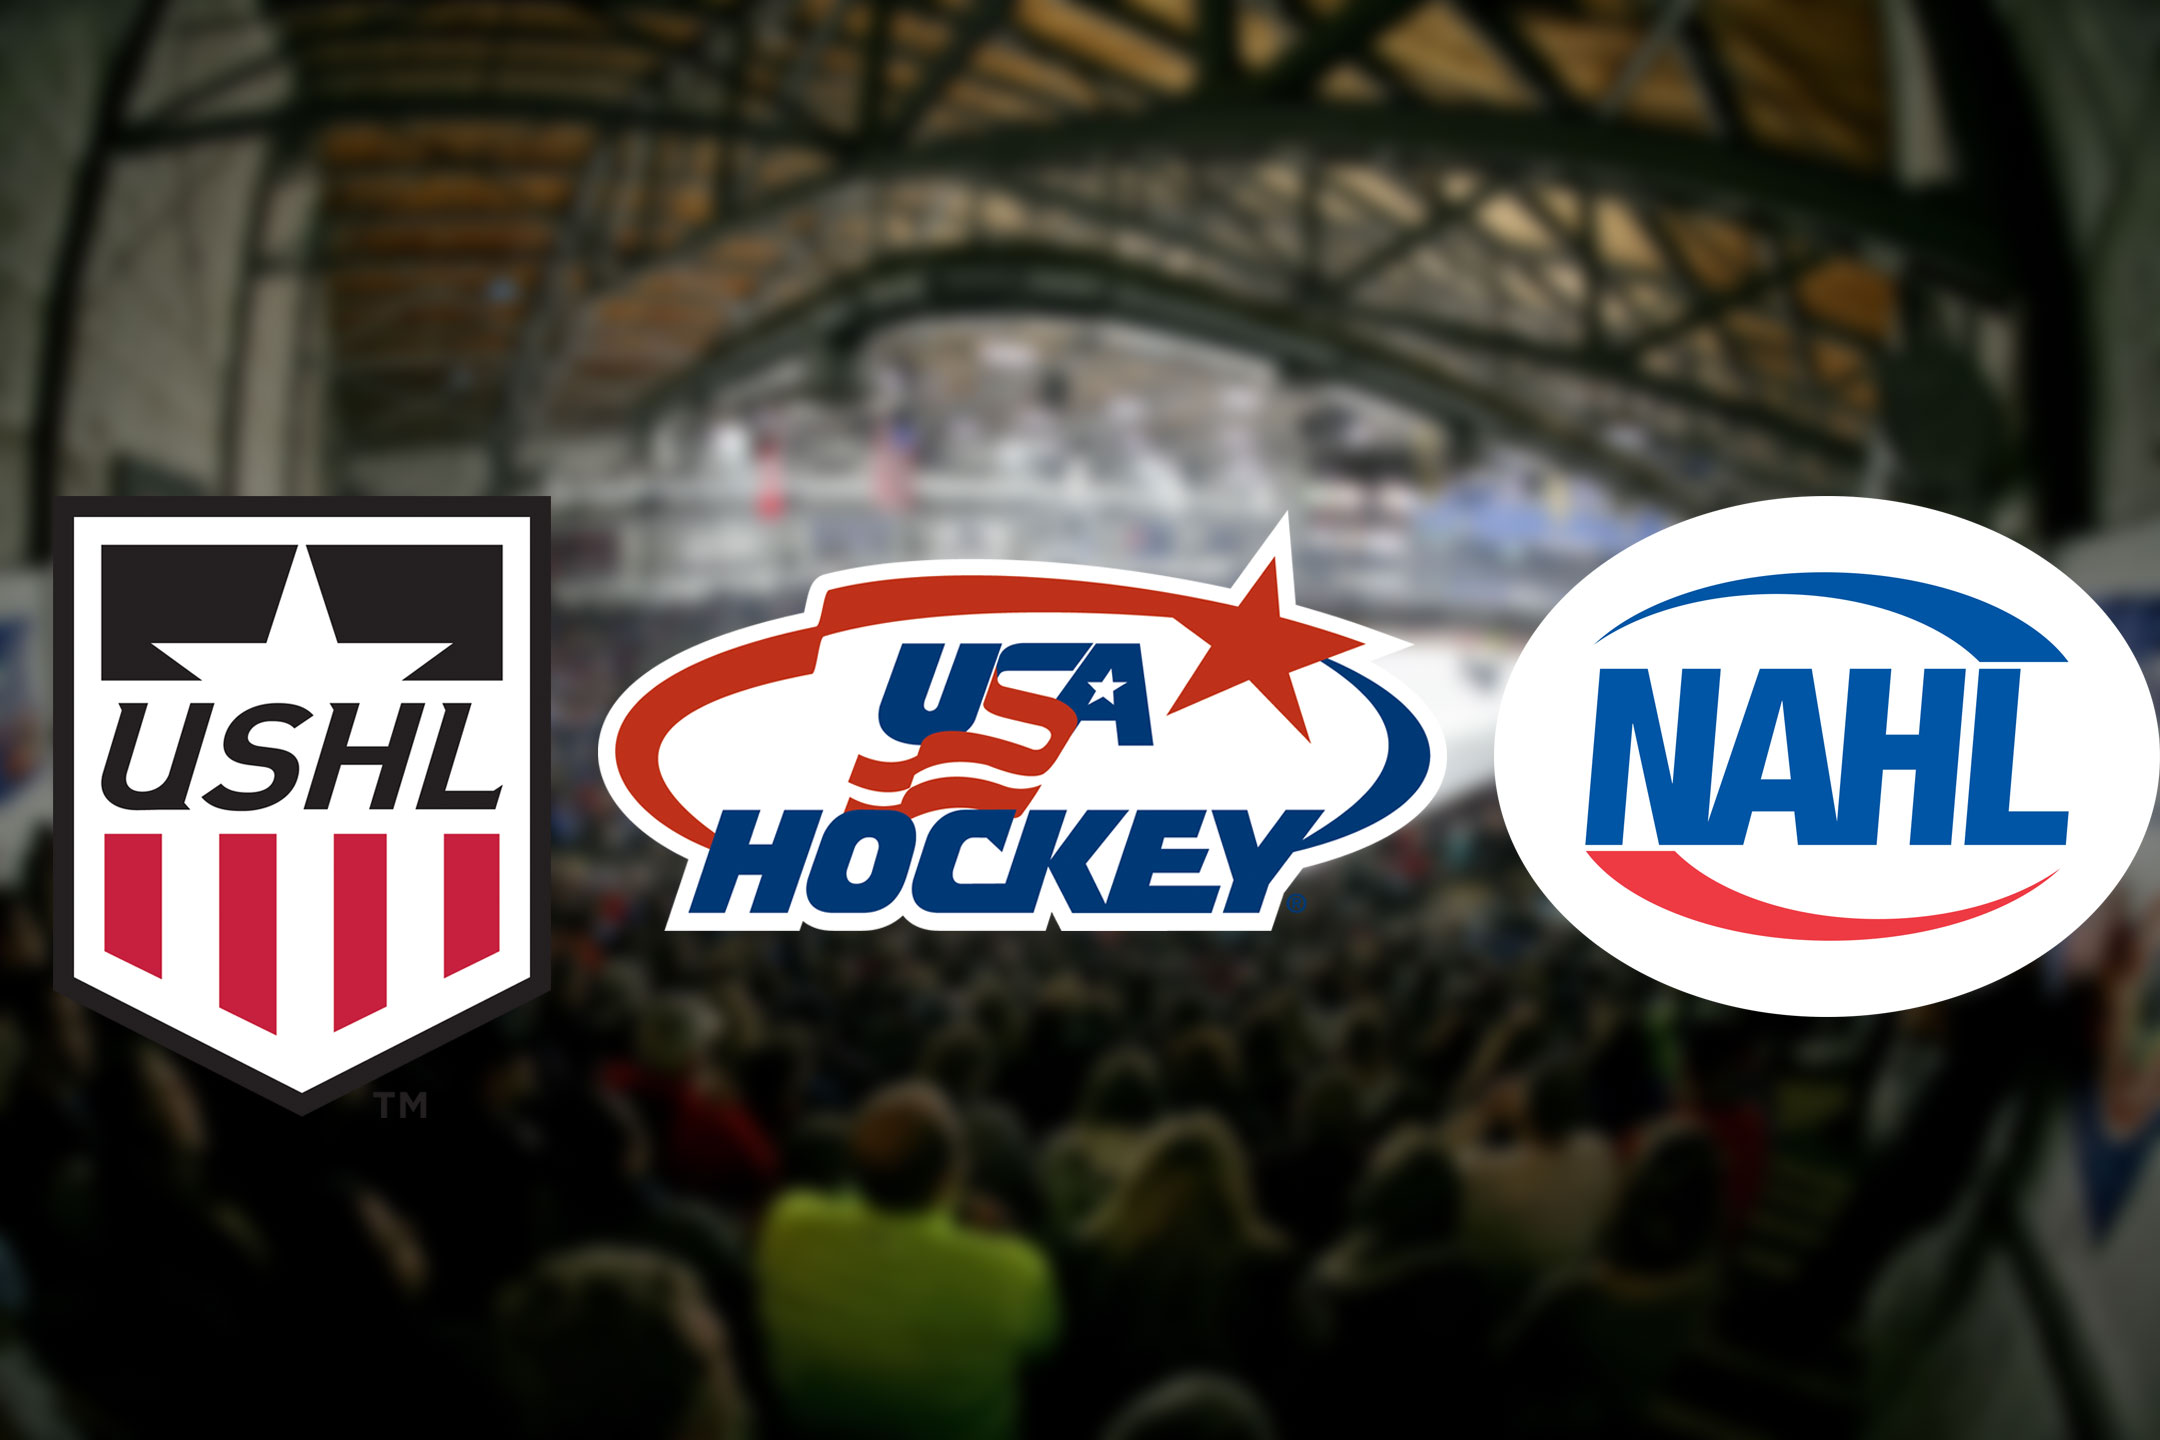 Ushl And Nahl Announce Revised Player Movement Agreement